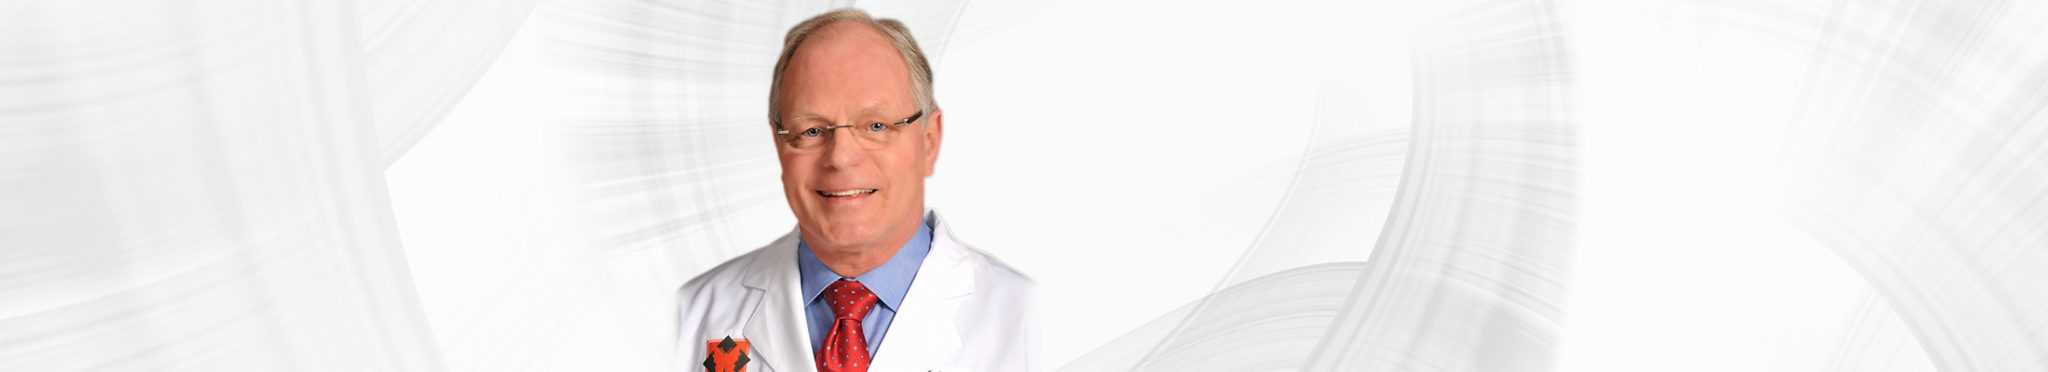 Dr. M. James Clark - Northwest Oral & Maxillofacial Surgery